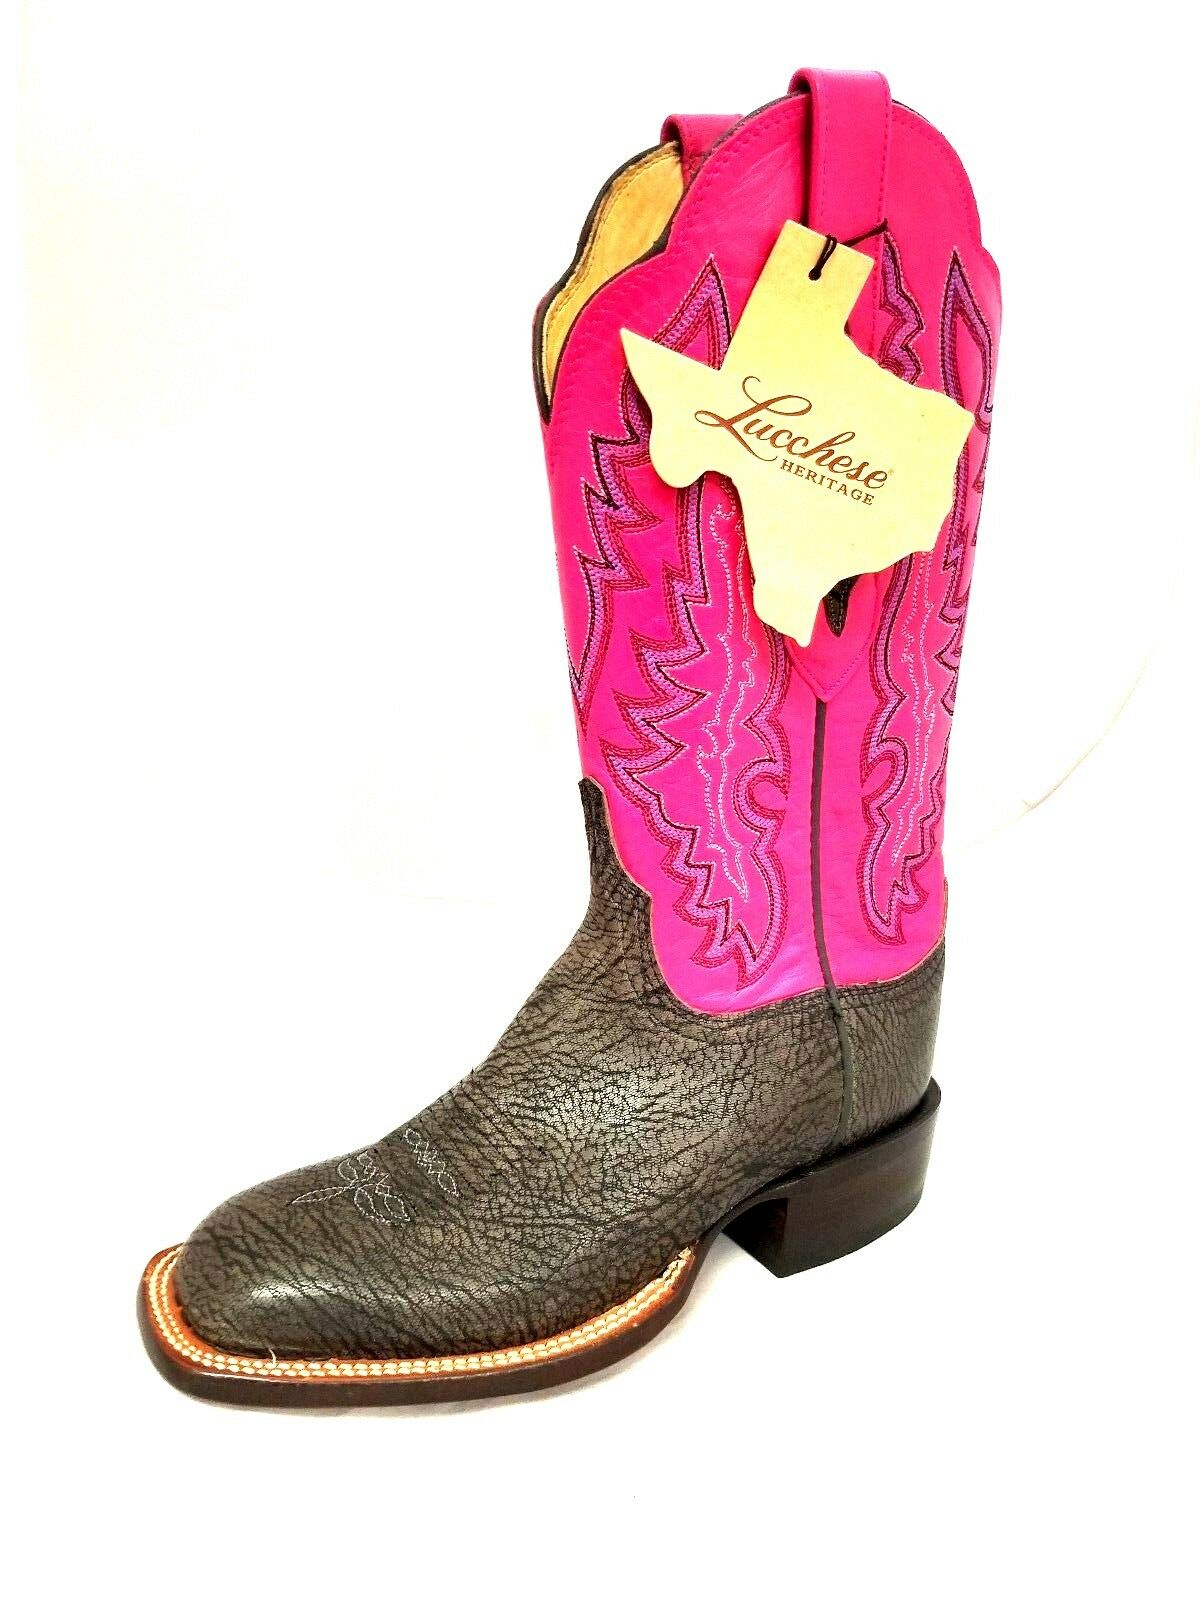 WOMEN'S LUCCHESE HY5502.WF GREY ANTHRACITE/ HOT PINK WESTERN BOOTS